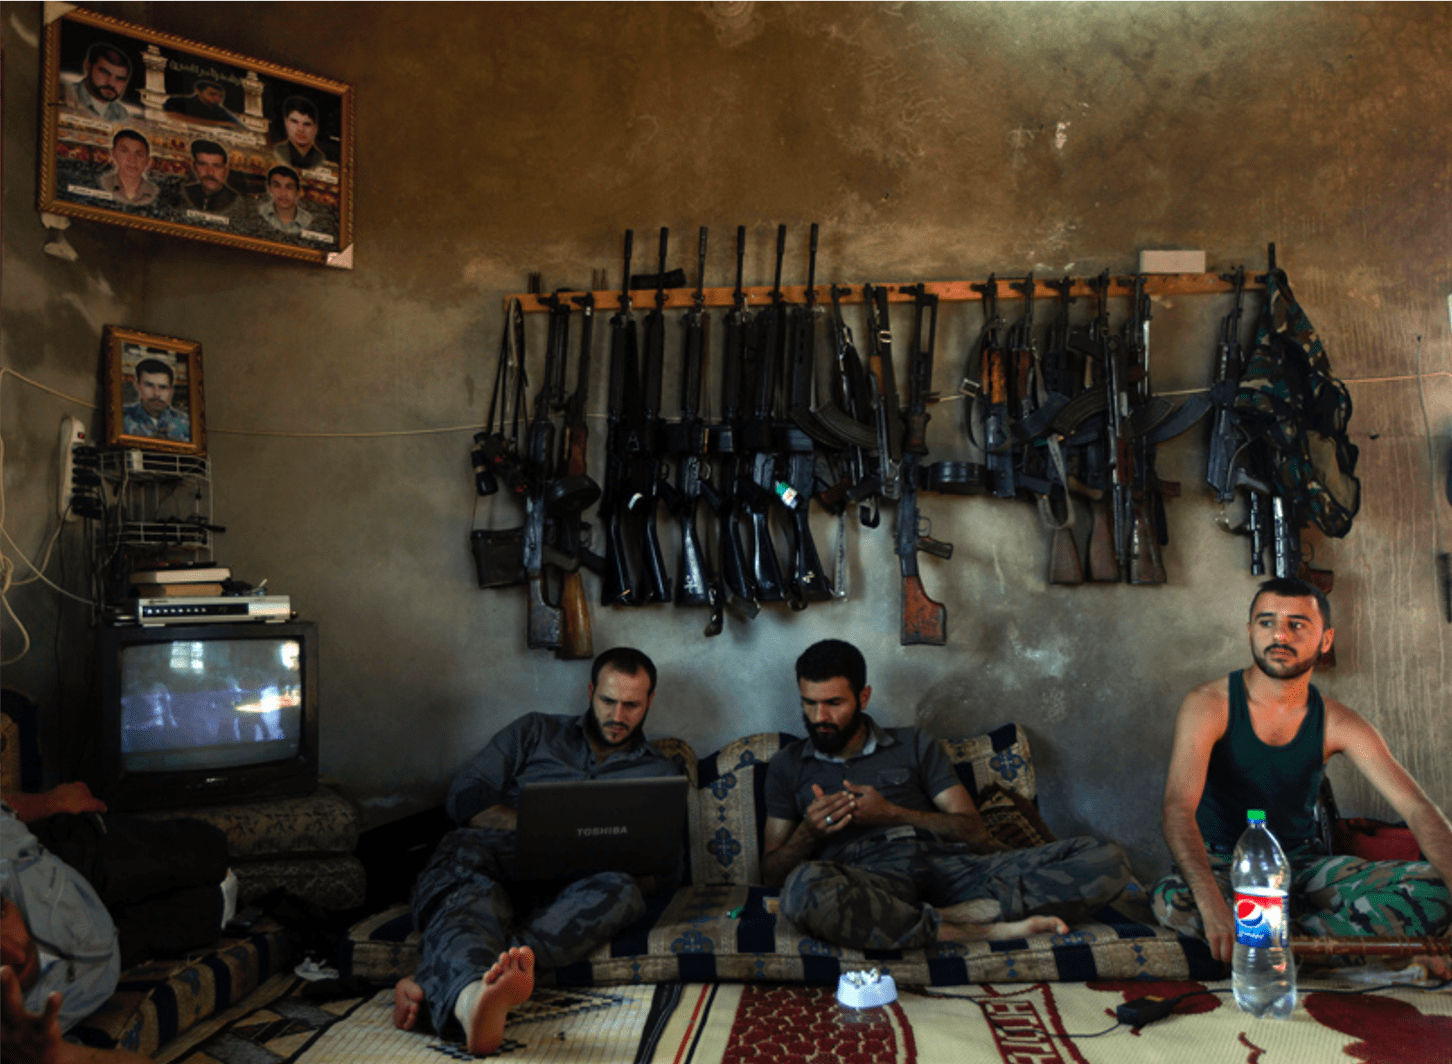 Free Syrian Army fighters sit in a house on the outskirts of Aleppo, Syria, June 12, 2012. (Khalil Hamra, Associated Press - June 12, 2012)